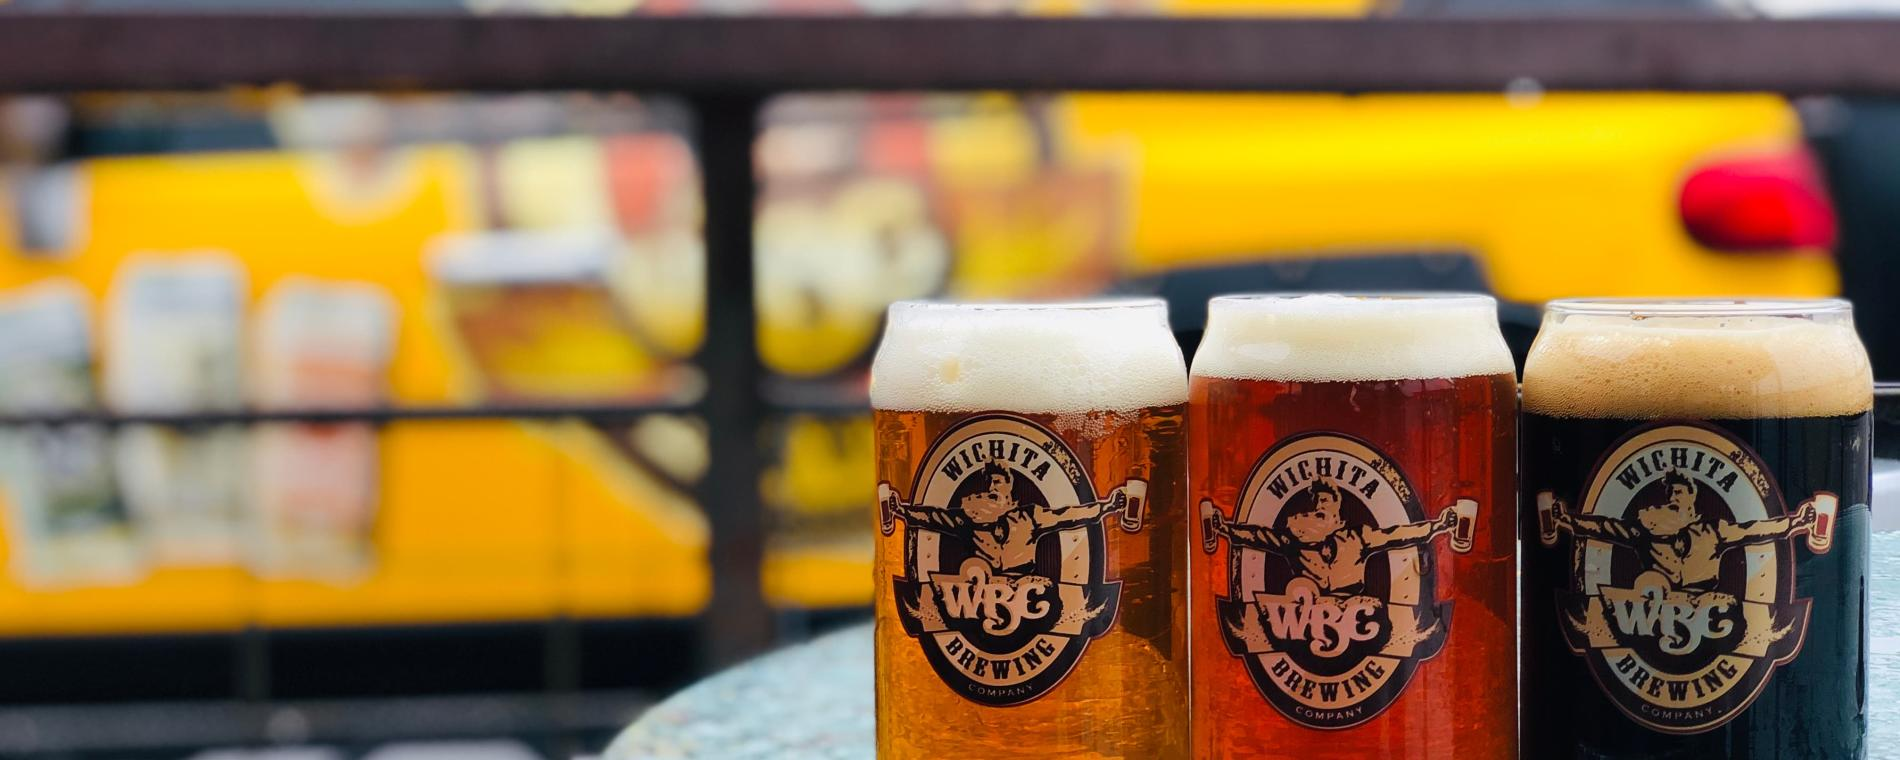 WBC Cold Beer